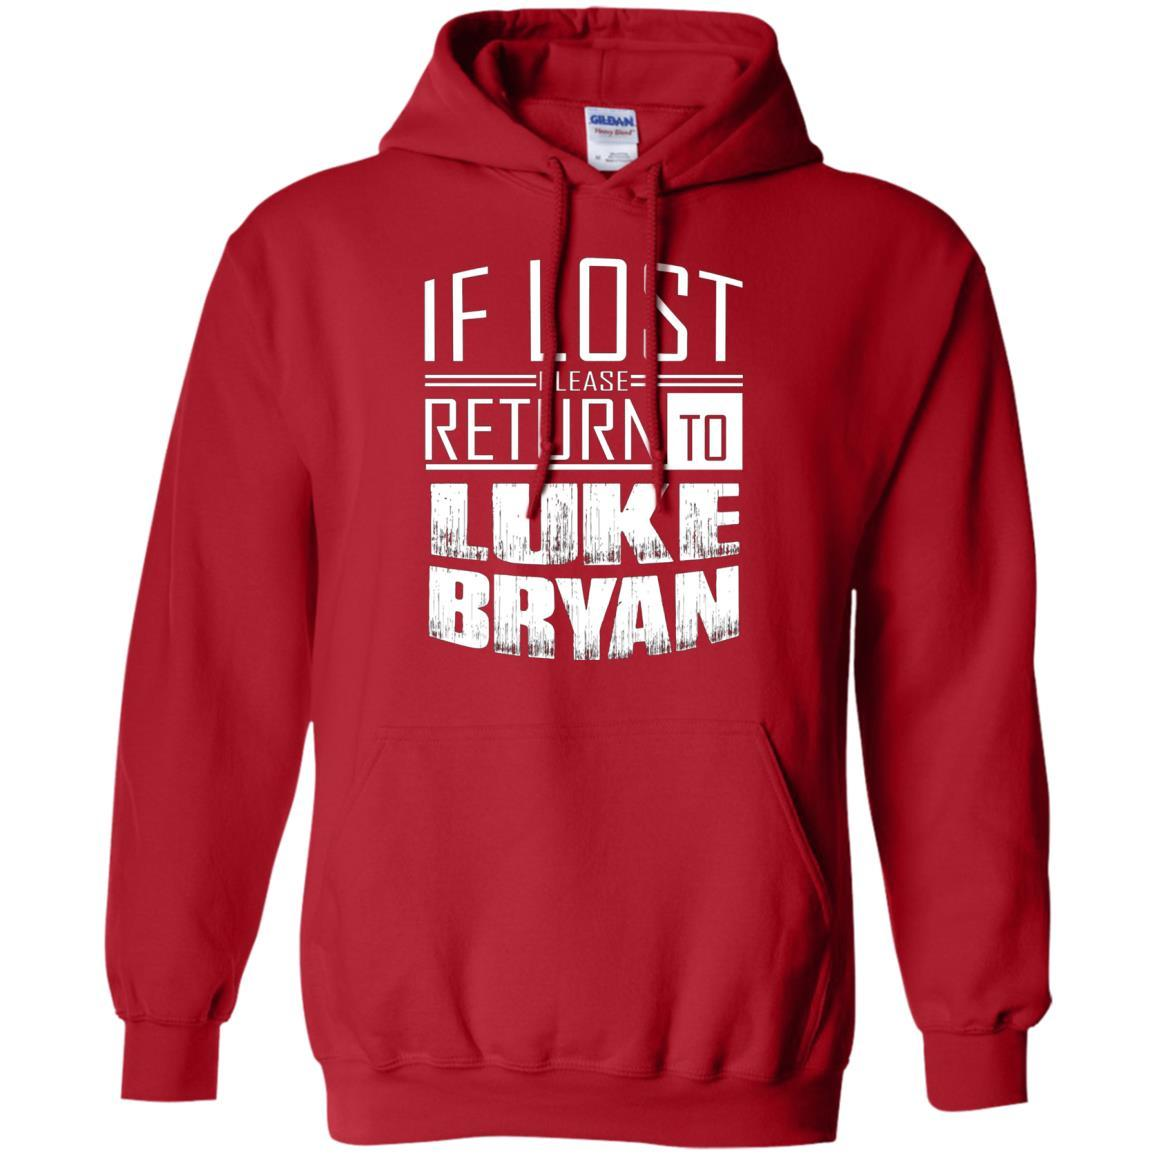 if lost please return to luke name bryan - Pullover Hoodie Red / 5XL